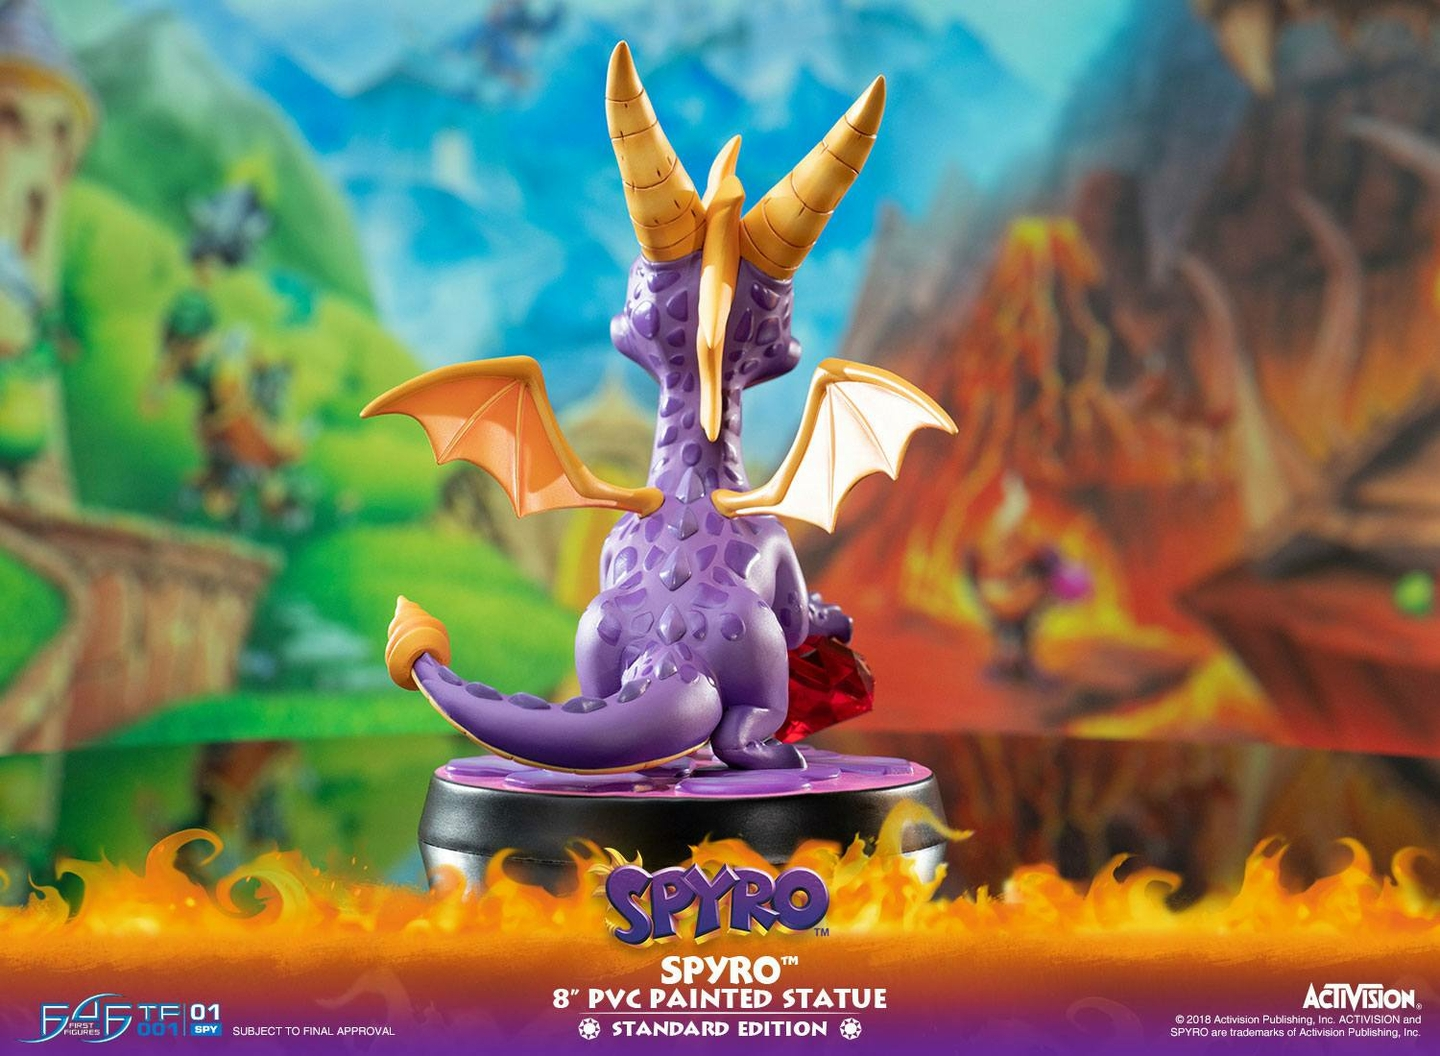 Statuette Spyro the Dragon Spyro 20cm 1001 Figurines (5)